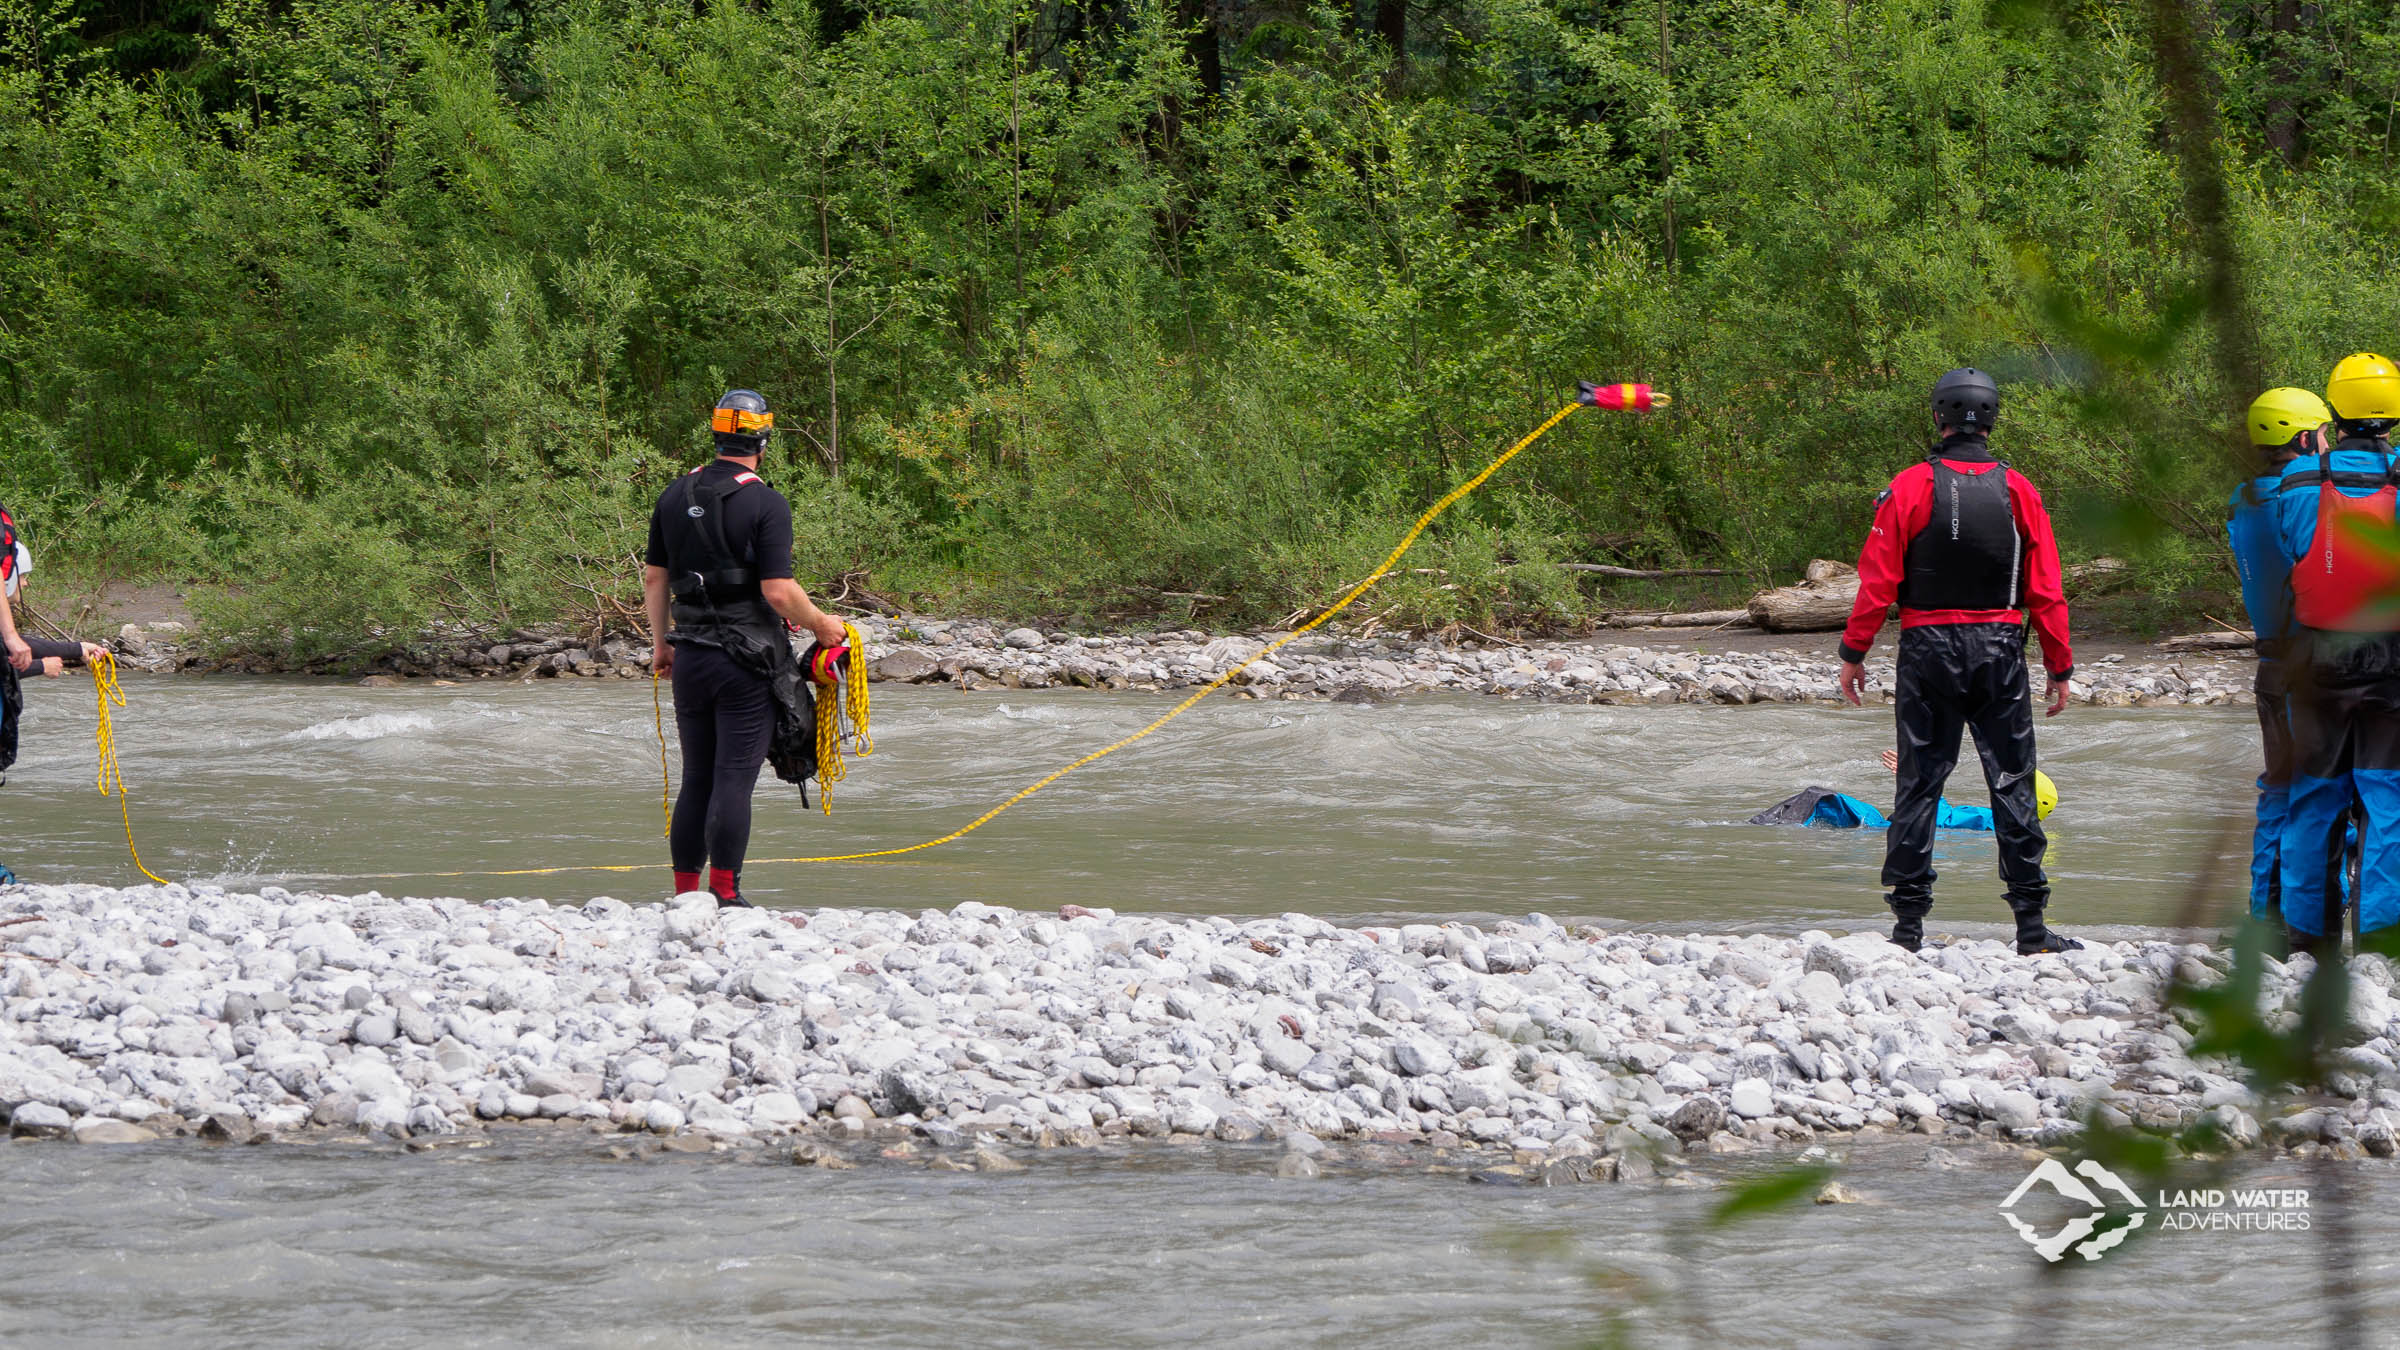 Safety Training Whitewater Packrafting Tirol © Land Water Adventures